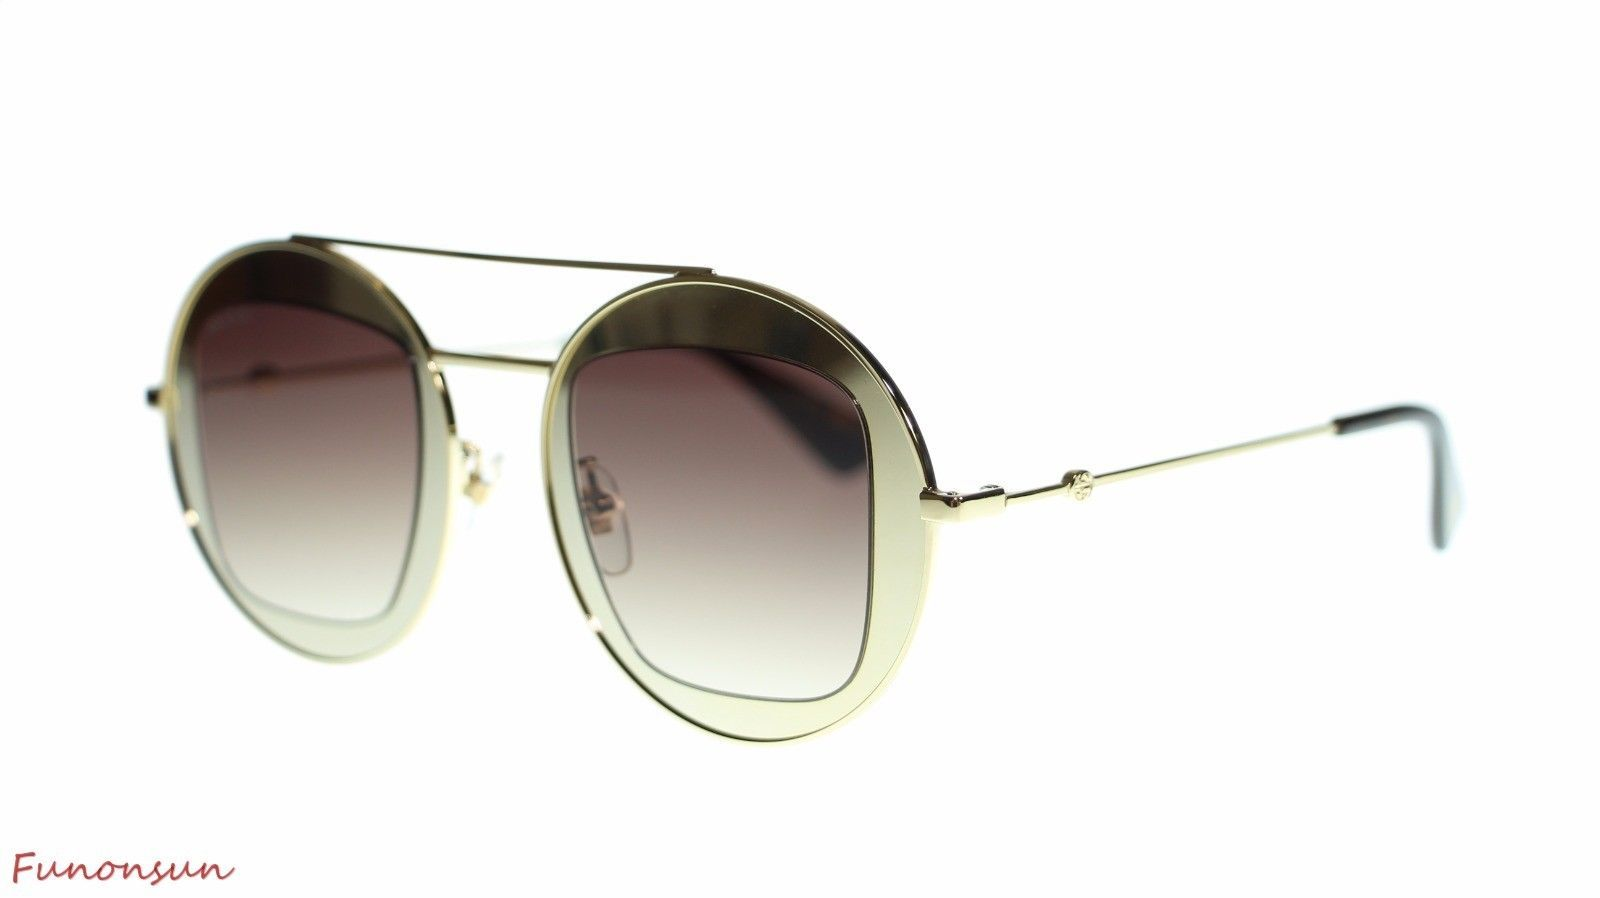 c22e83d9190 Gucci Women Round Sunglasses GG0105S 002 and similar items. 10